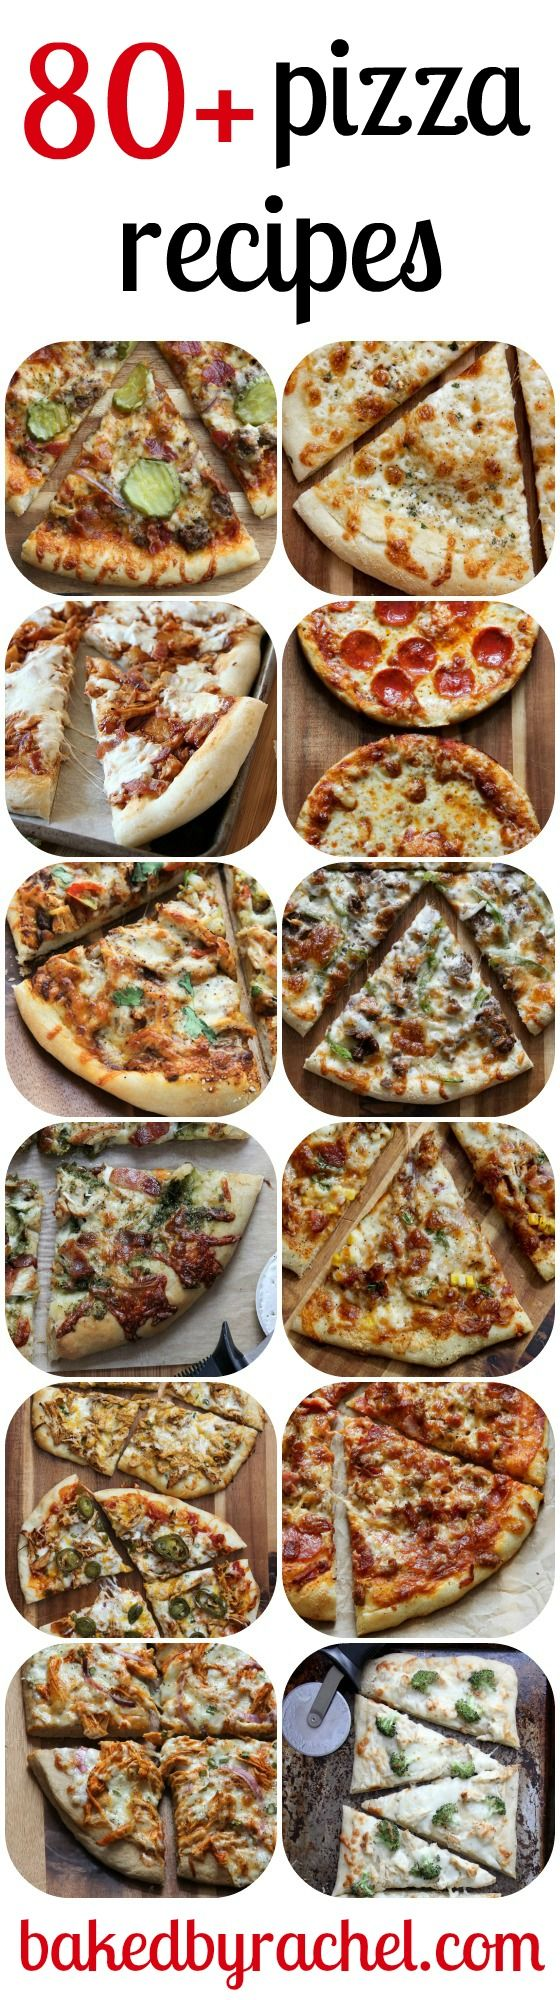 80+ homemade pizza recipes on bakedbyrachel.com